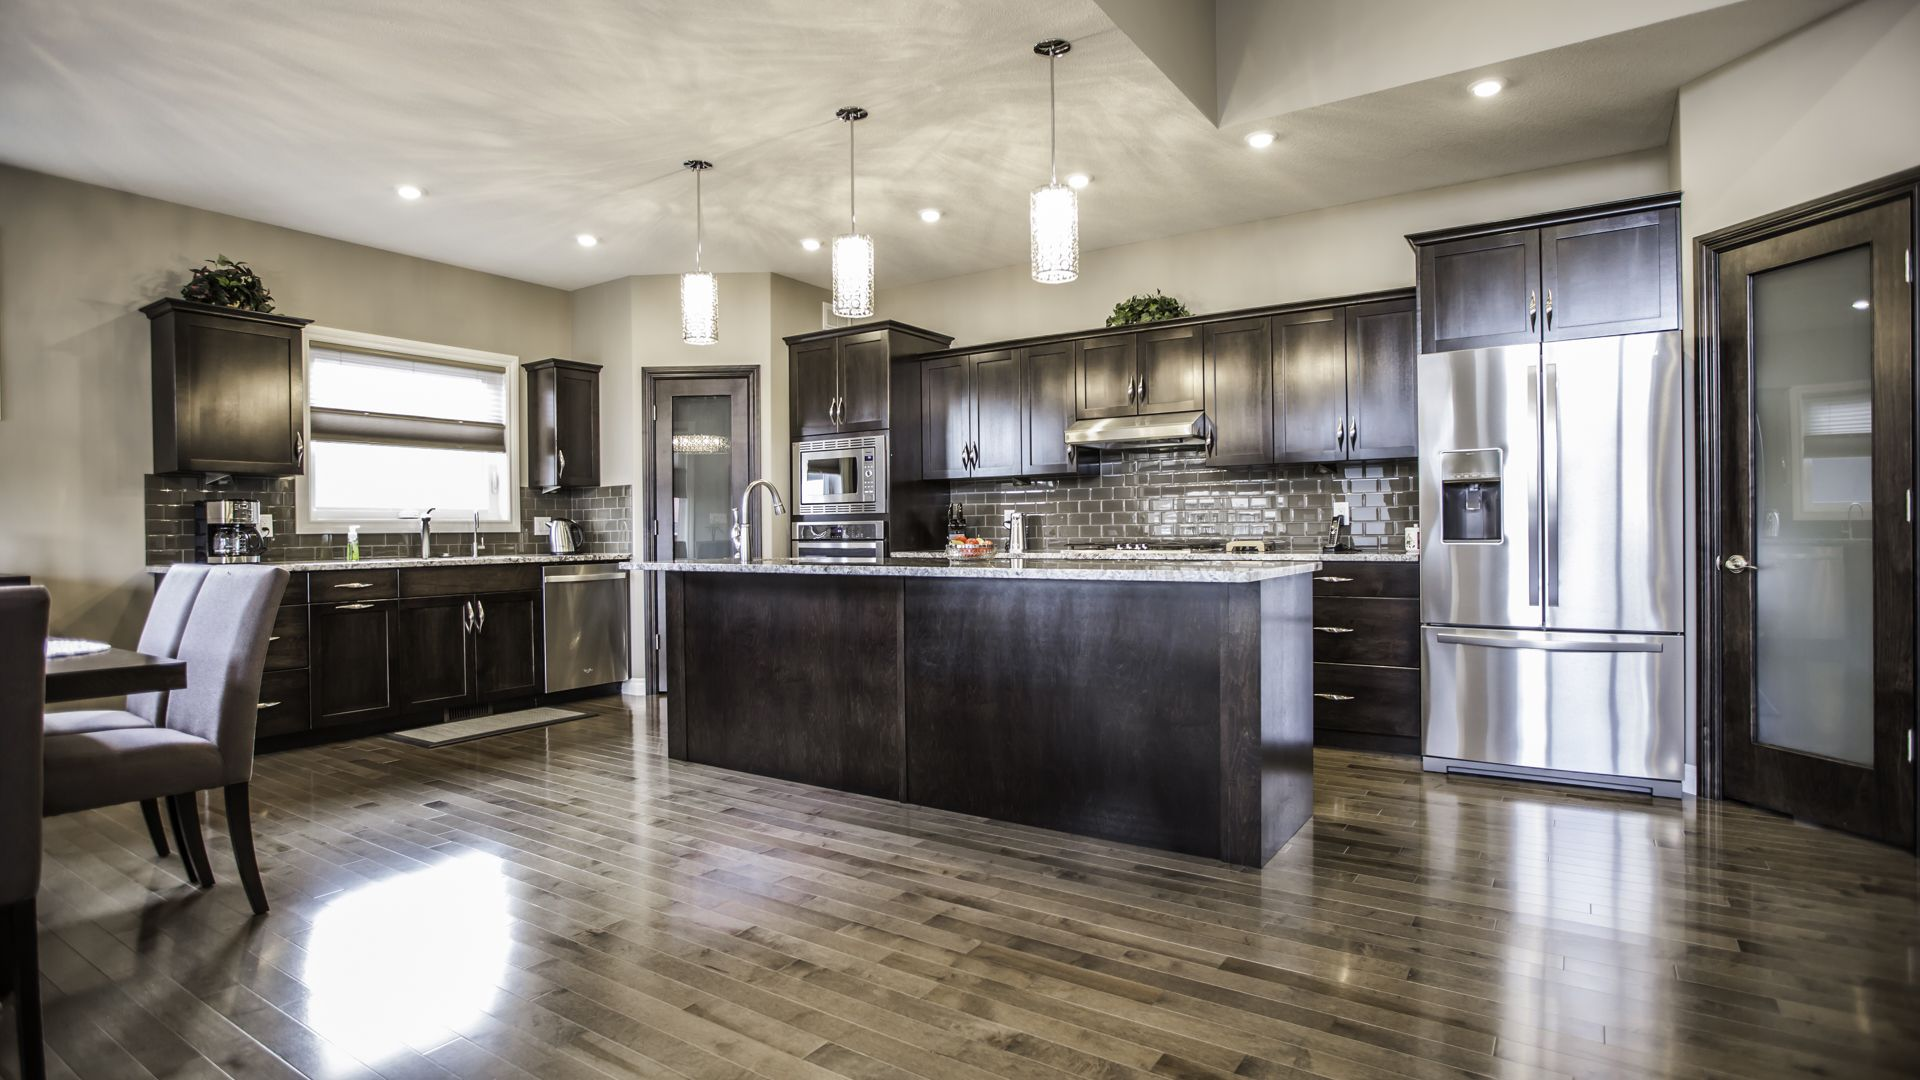 Cougar Custom Cabinets   Leading Cabinet Manufacturer In Regina Specializes  In Wooden Kitchen Cabinets, Bathroom